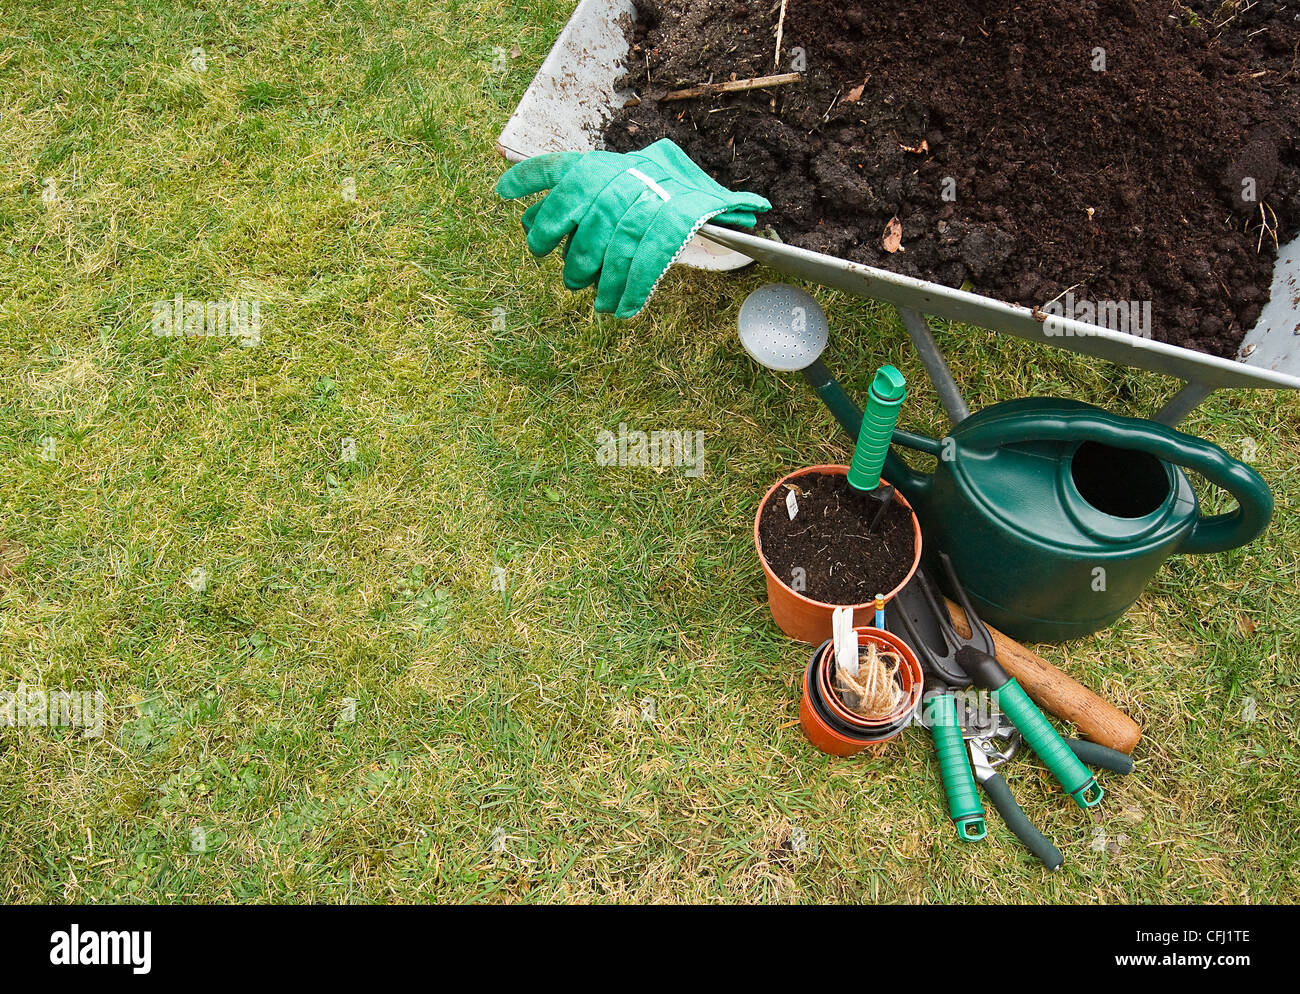 Gardeners utensils on a grass lawn - Stock Image